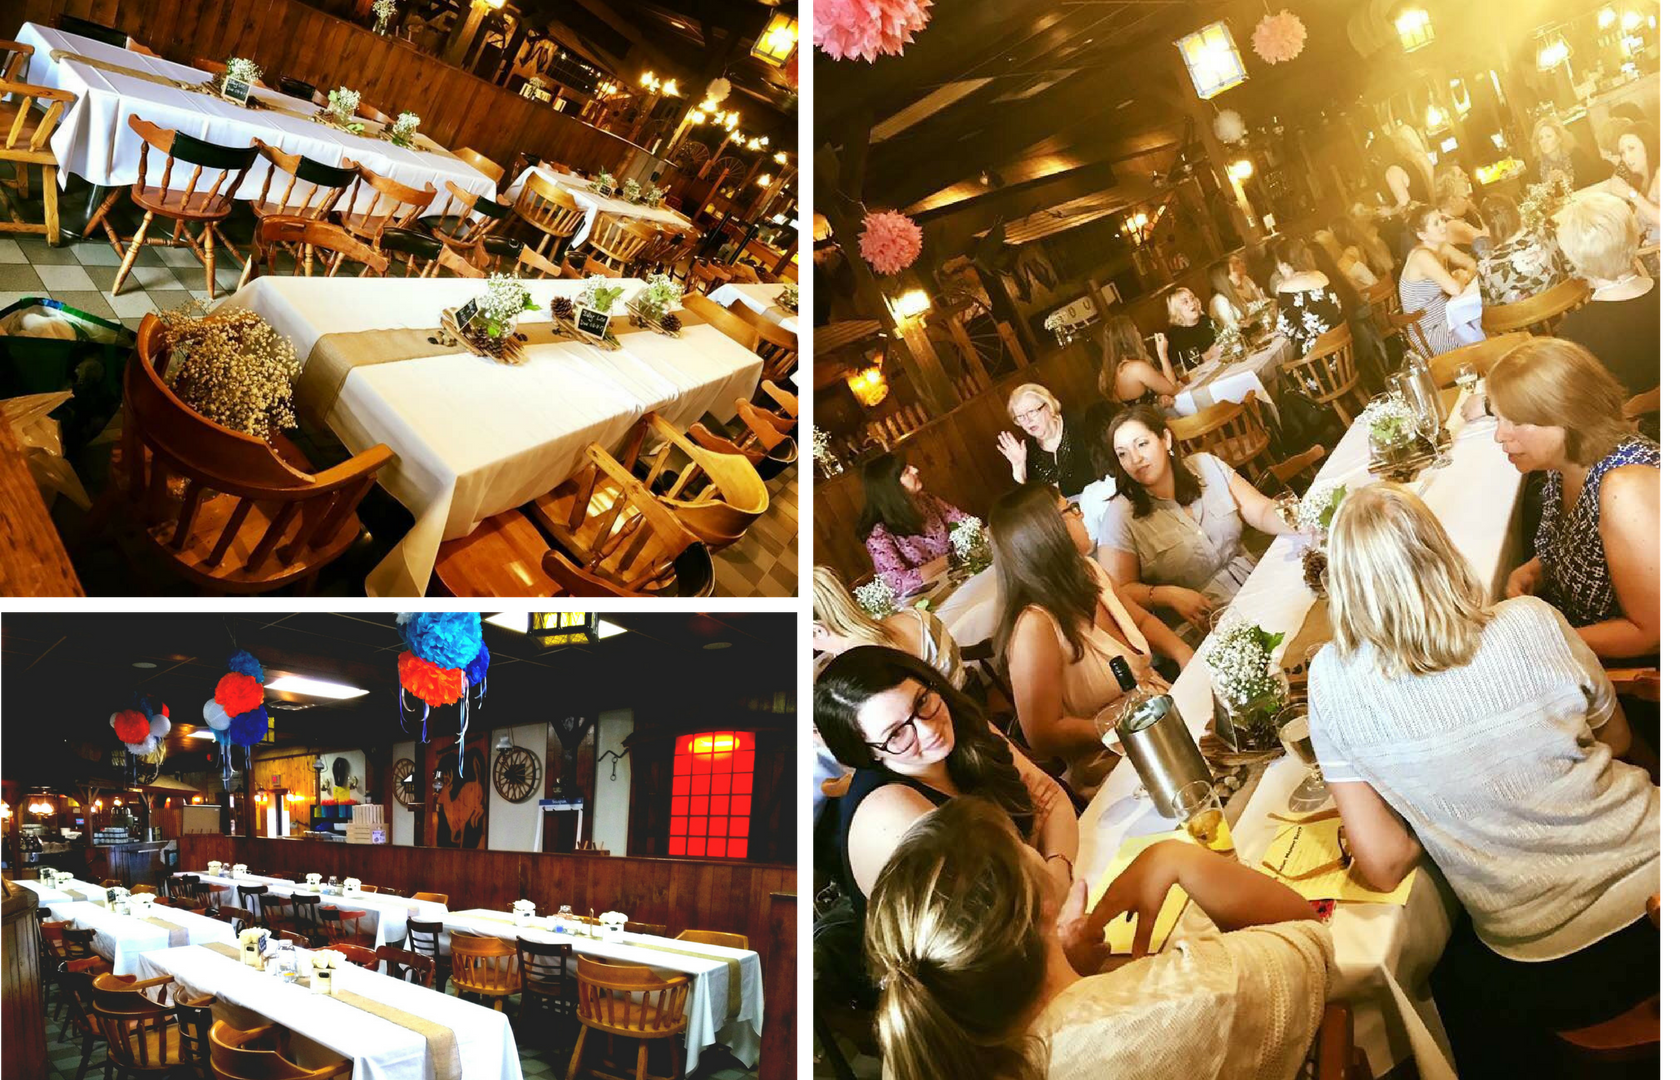 Bring Everyone ! - Come Home to The Bar-B Barn for all of your get-togethers; from Office holiday Parties to Family gatherings, even Sport Team Banquets. The Bar-B has both private and semi-private rooms to accommodate groups as large as 200+ people! Whether its your first time here or visiting again make this your go-to destisnation. Come watch your favorite sporting event, host your birthday or kick back and enjoy the best ribs in the city. Here at The Bar B Barn we believe in one thing…having a great time!